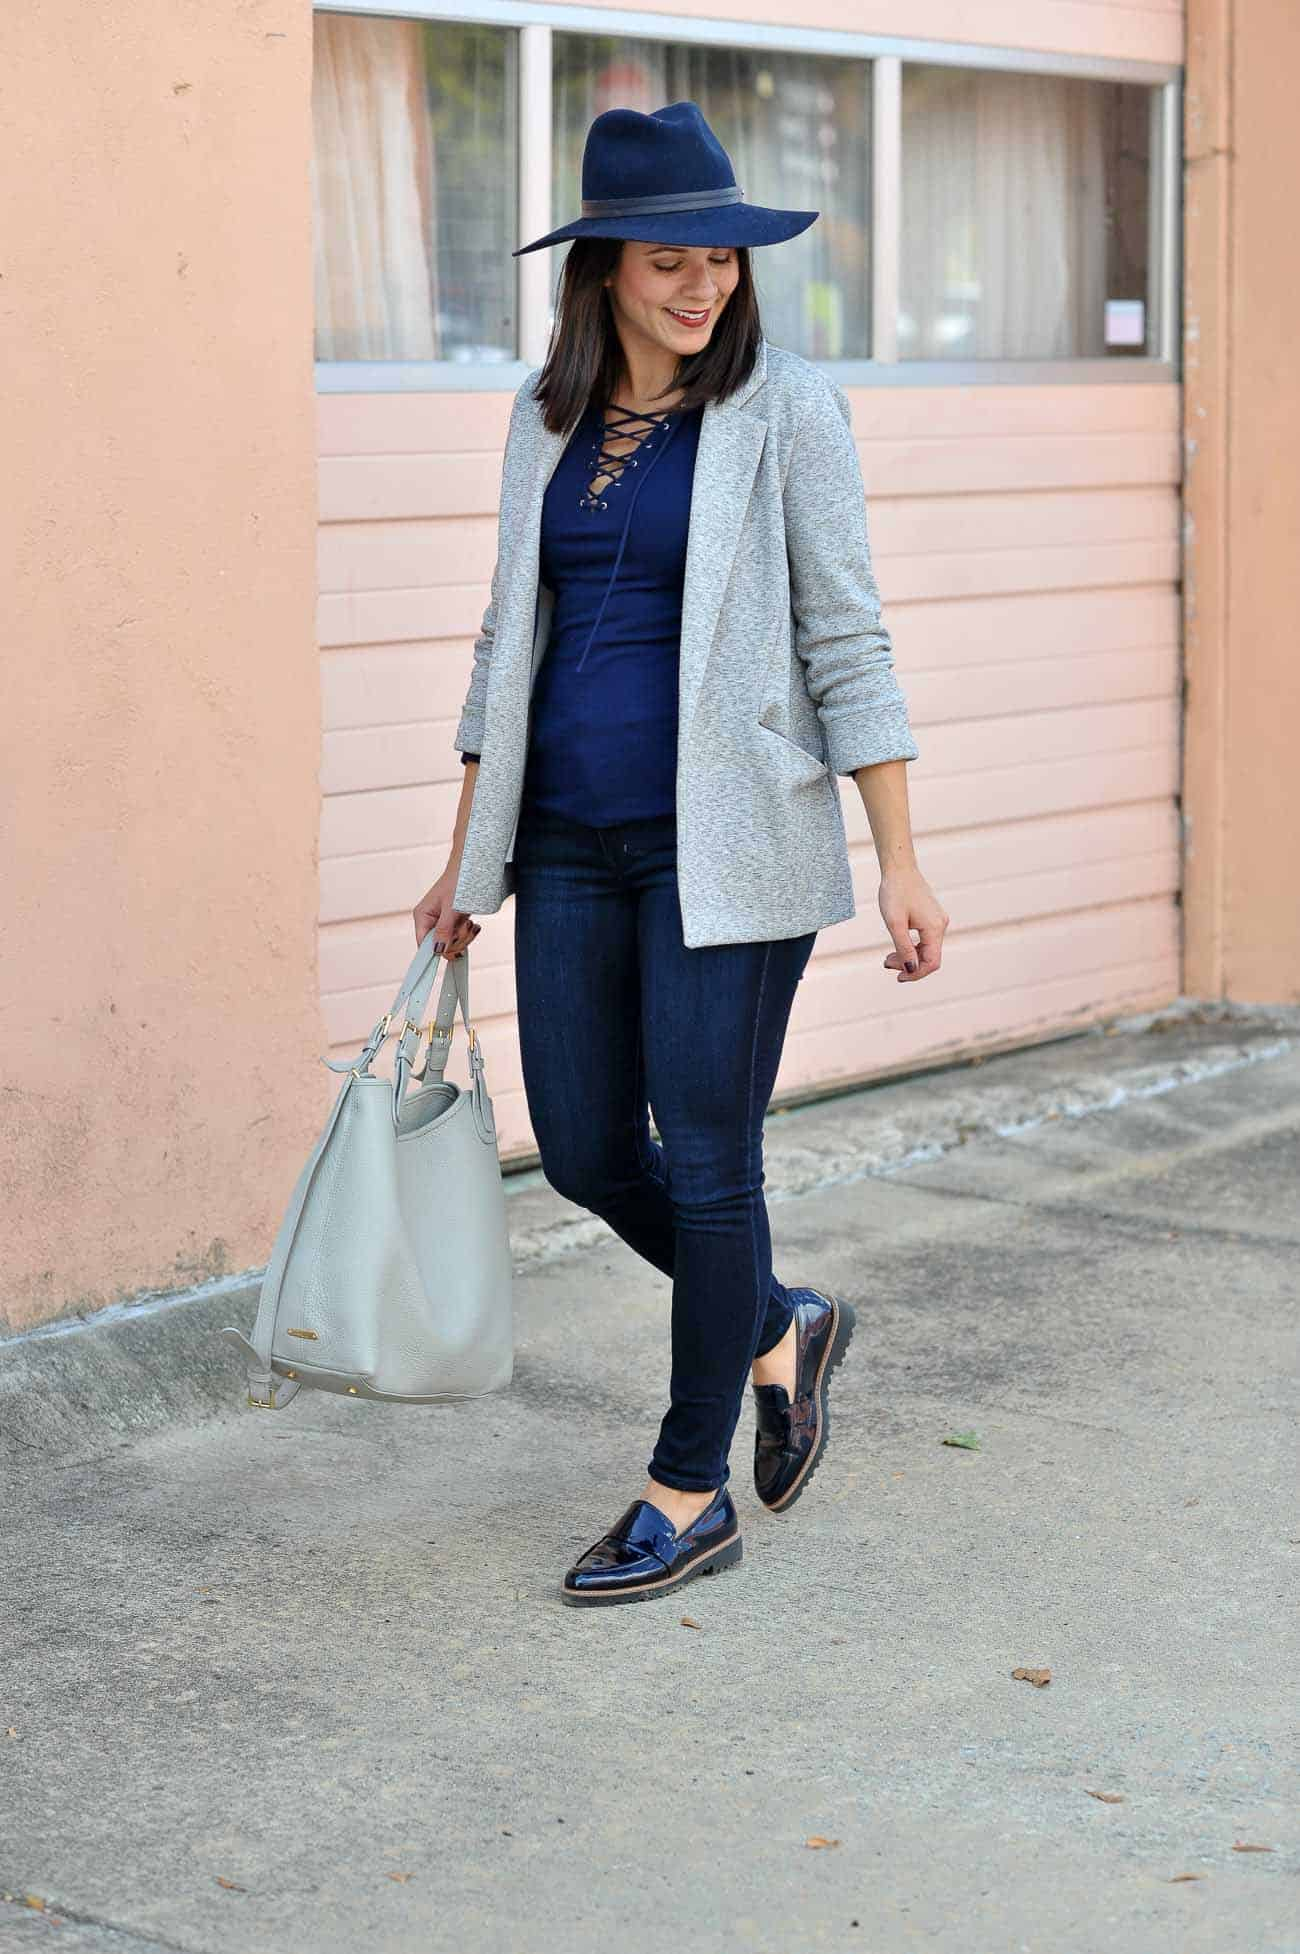 Nordstrom Halogen Loafers, casual tomboy chic outfit ideas - My Style Vita